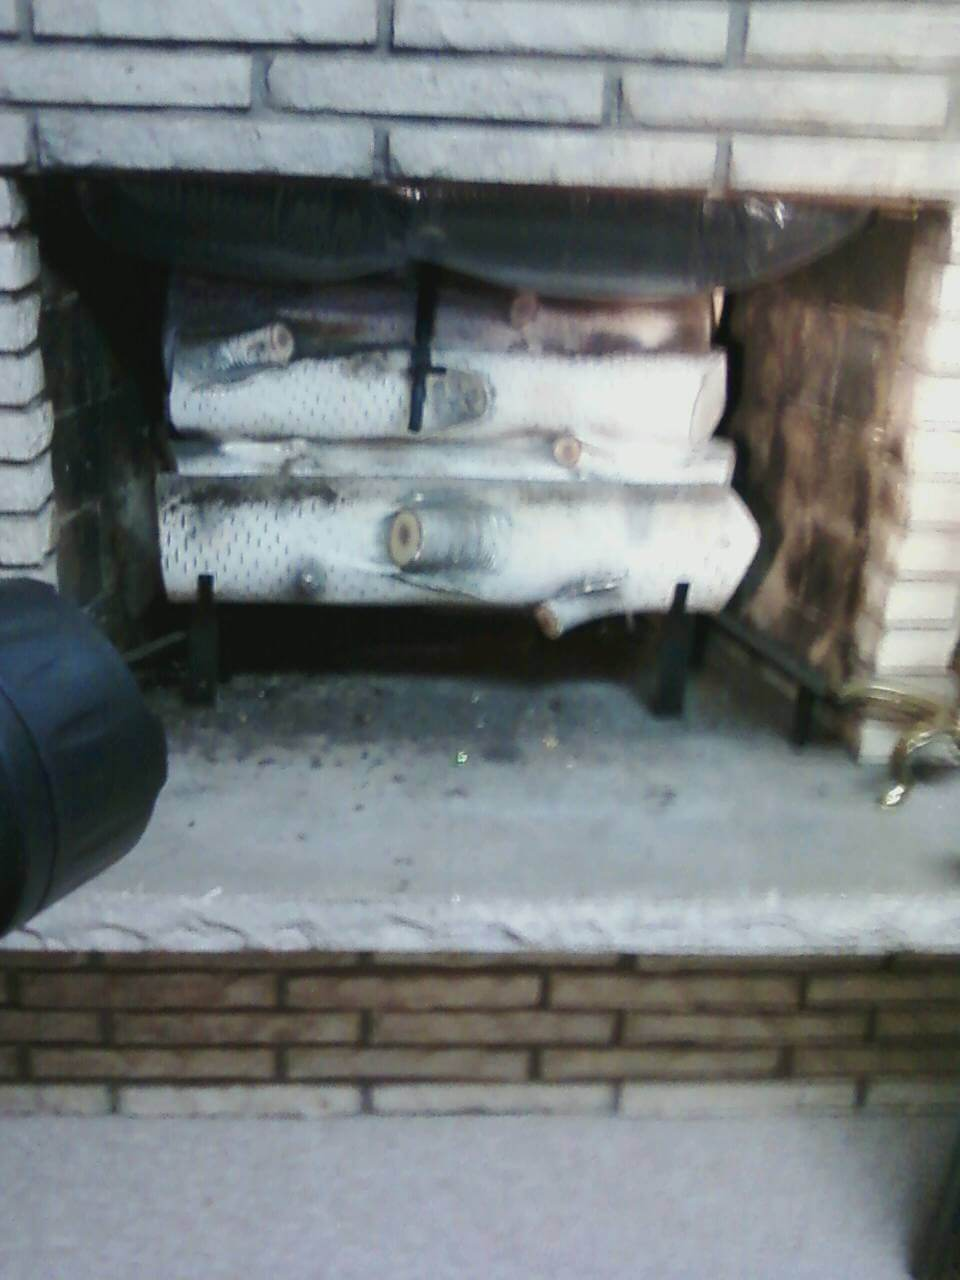 40 i have a fireplace with a twist knob on the face of the